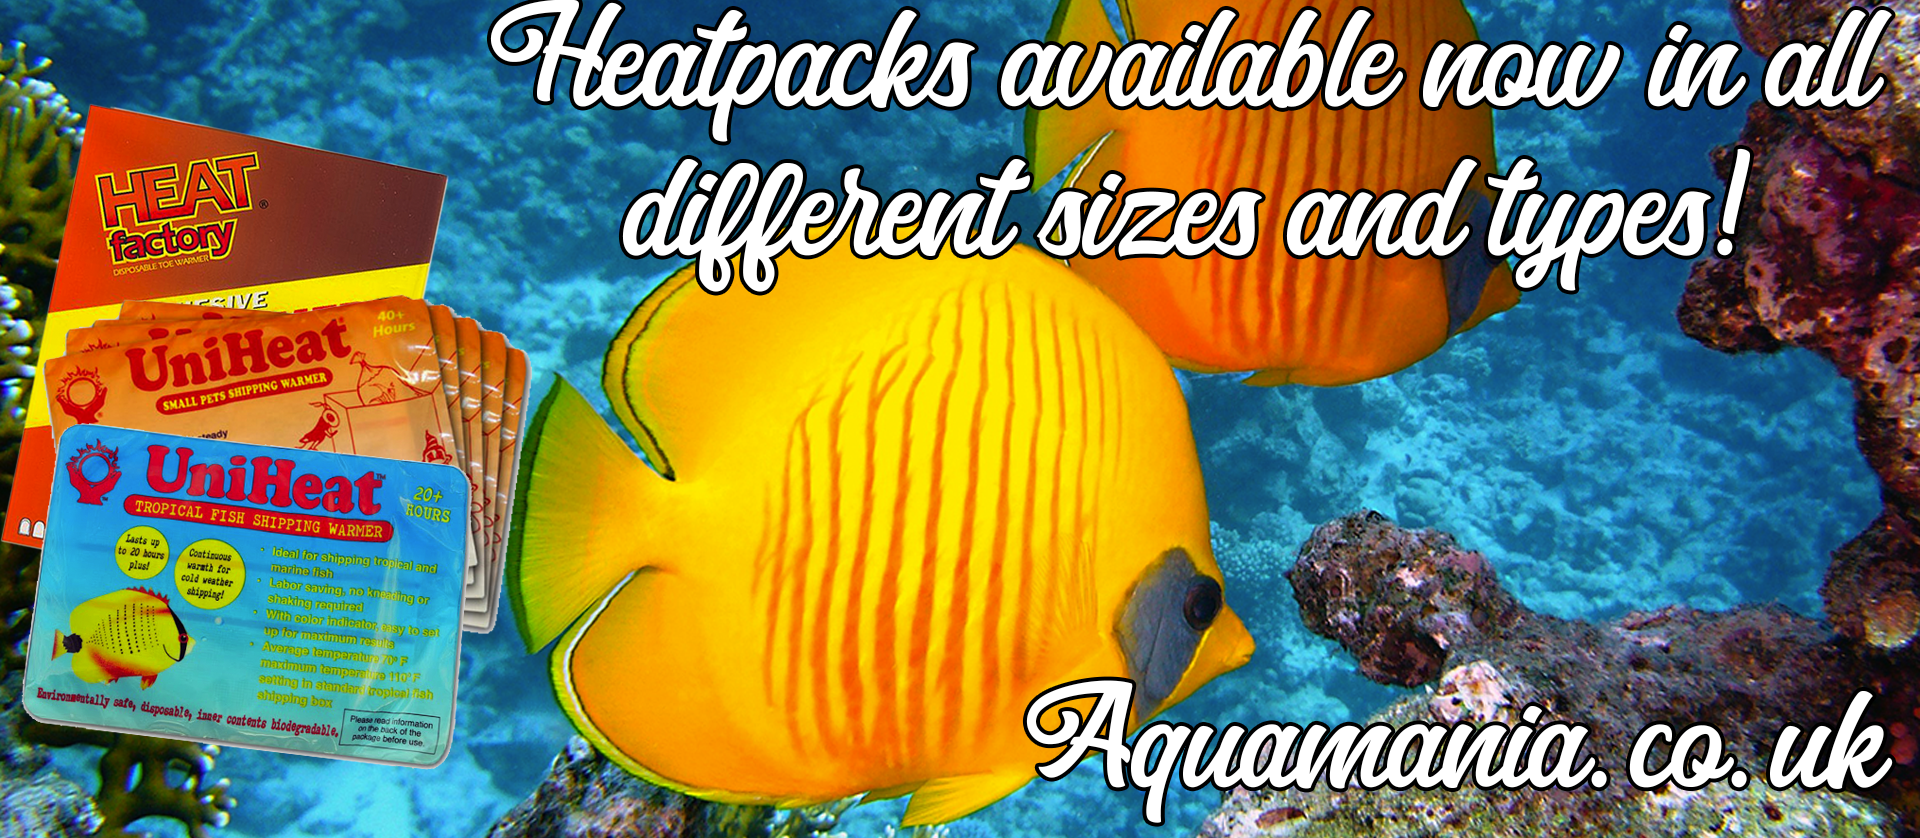 Marine fish image behind heat packs by uniheat - text reads Heatpacks available now in all different sizes and types aquamania.co.uk